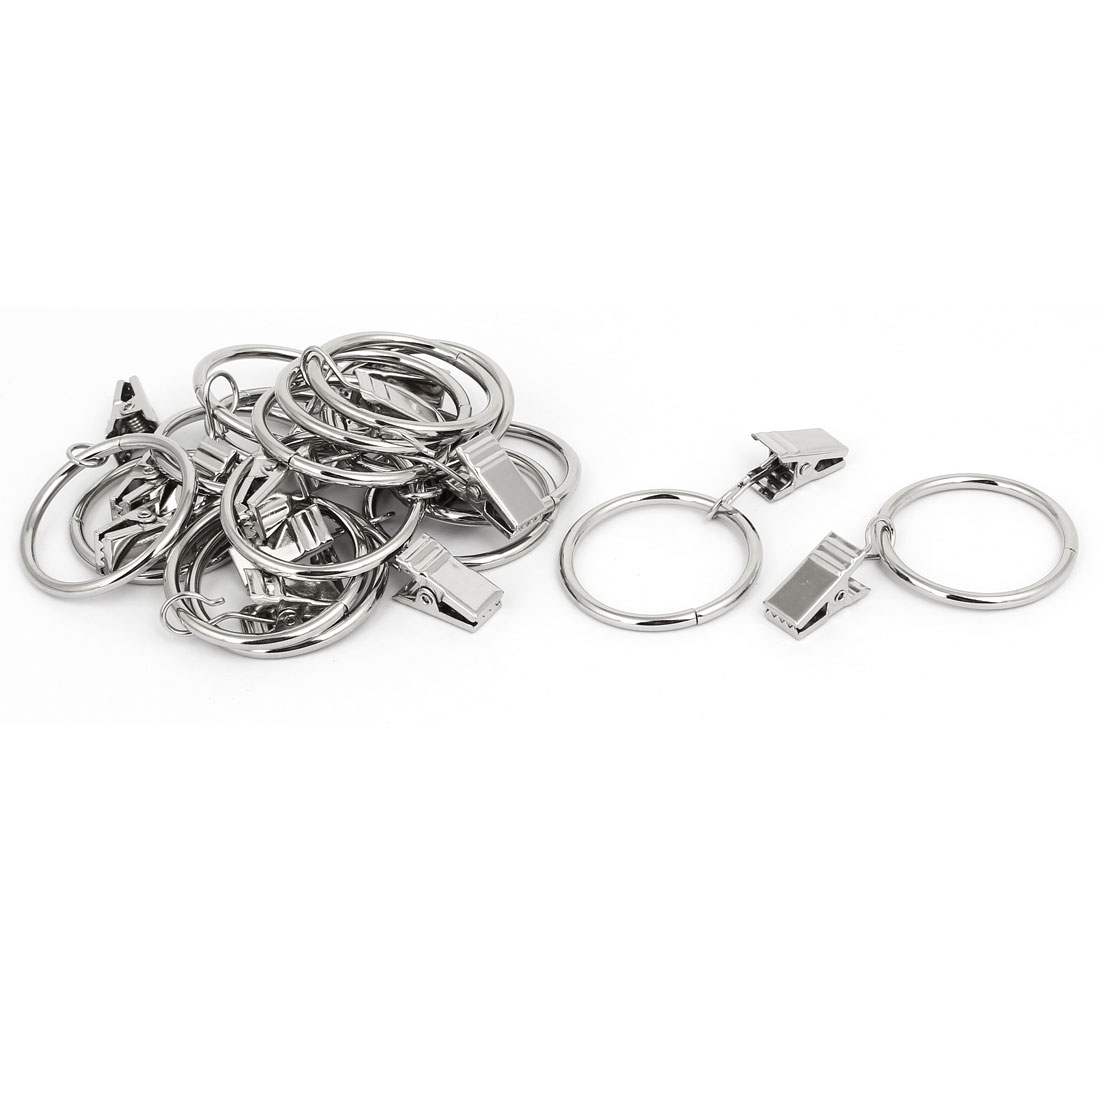 Metal Drapes Curtain Clip Ring Hanging Hooks Silver Tone